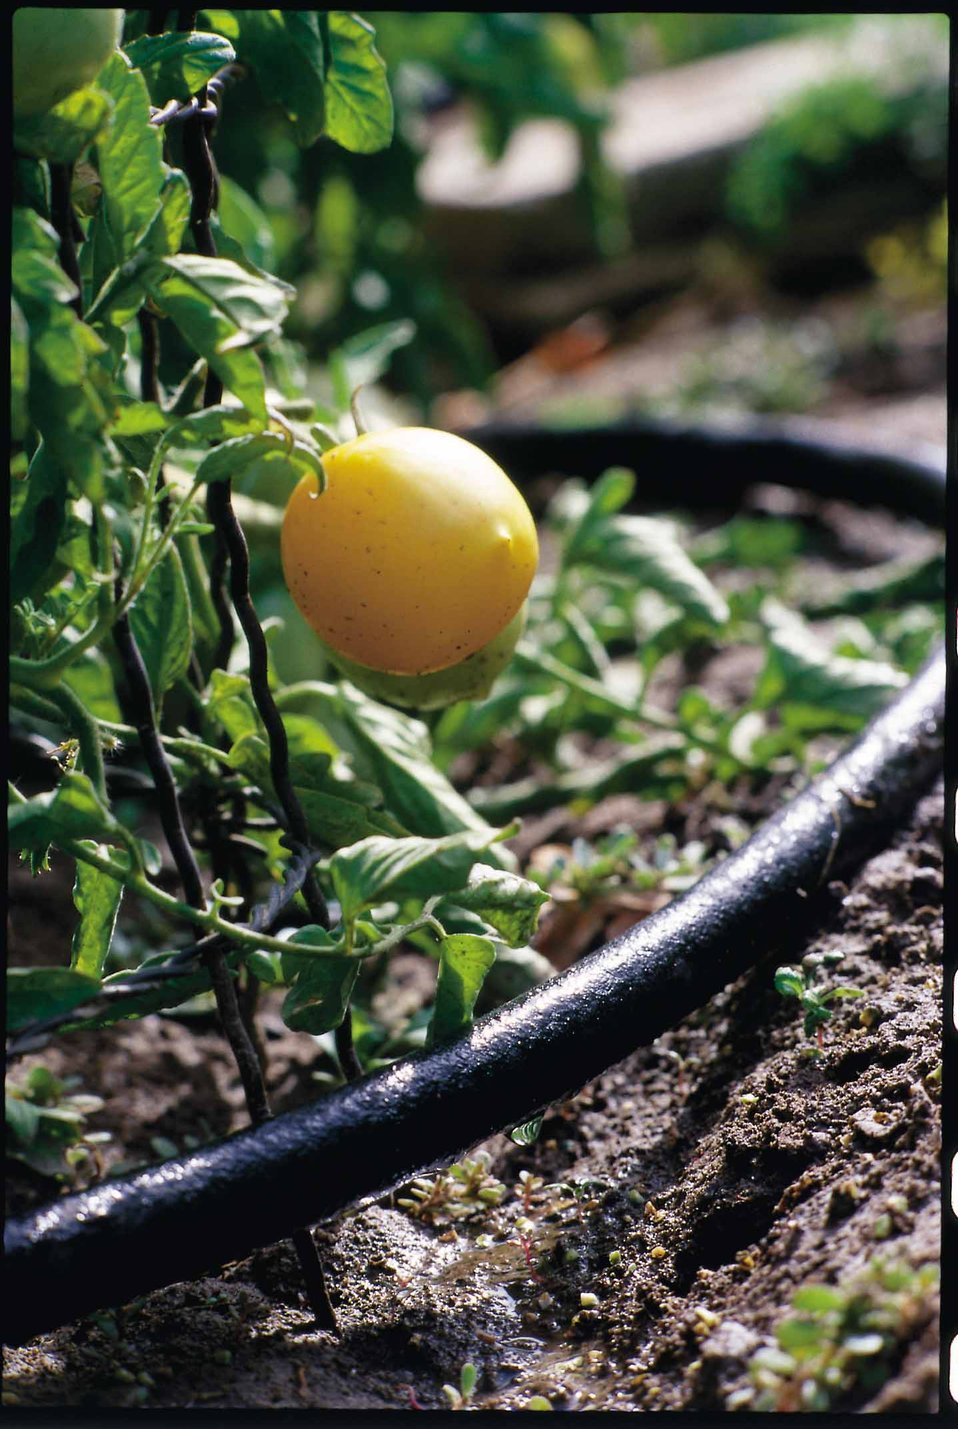 Drip irrigation is an excellent way to conserve water in gardens.